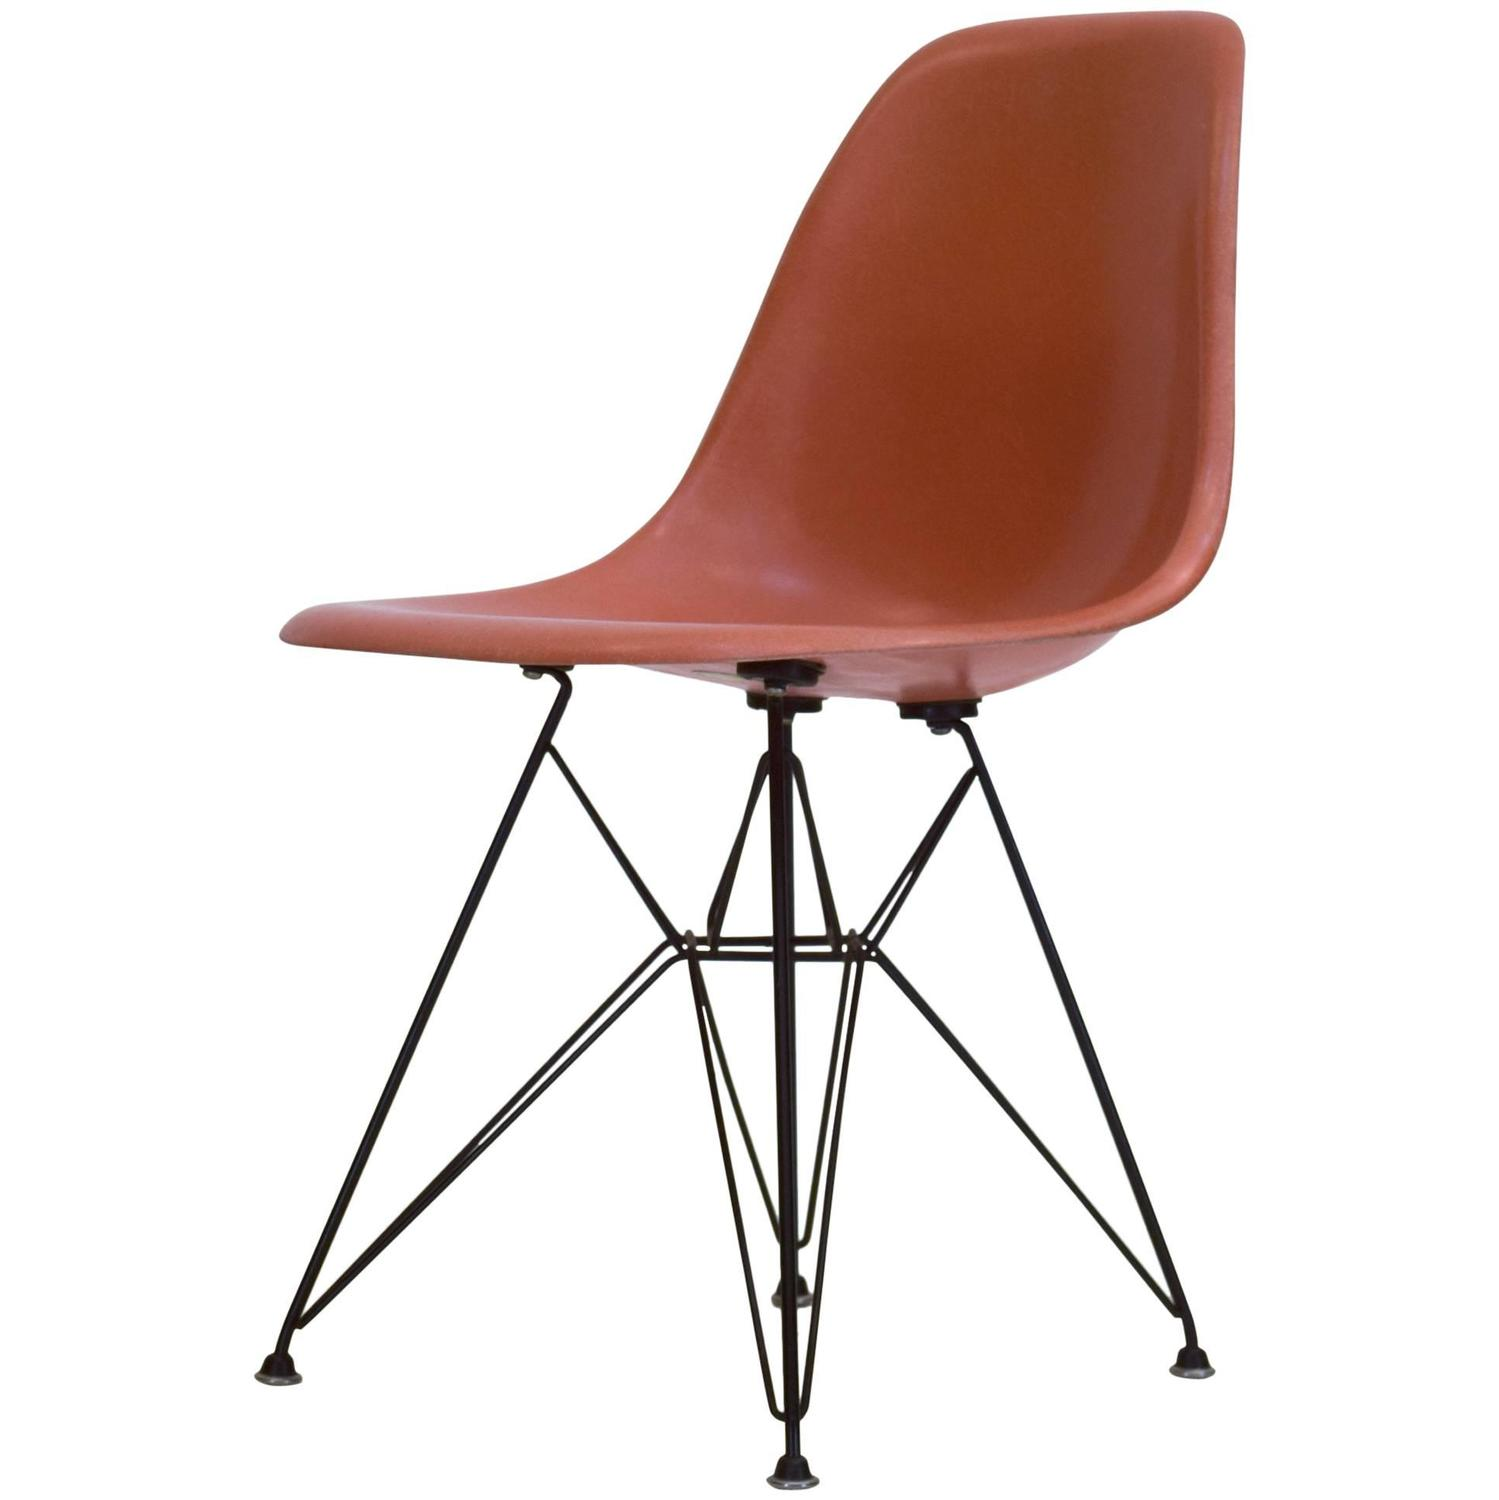 Eanes Chair Eames Shell Chair On Original Eiffel Base 1950s